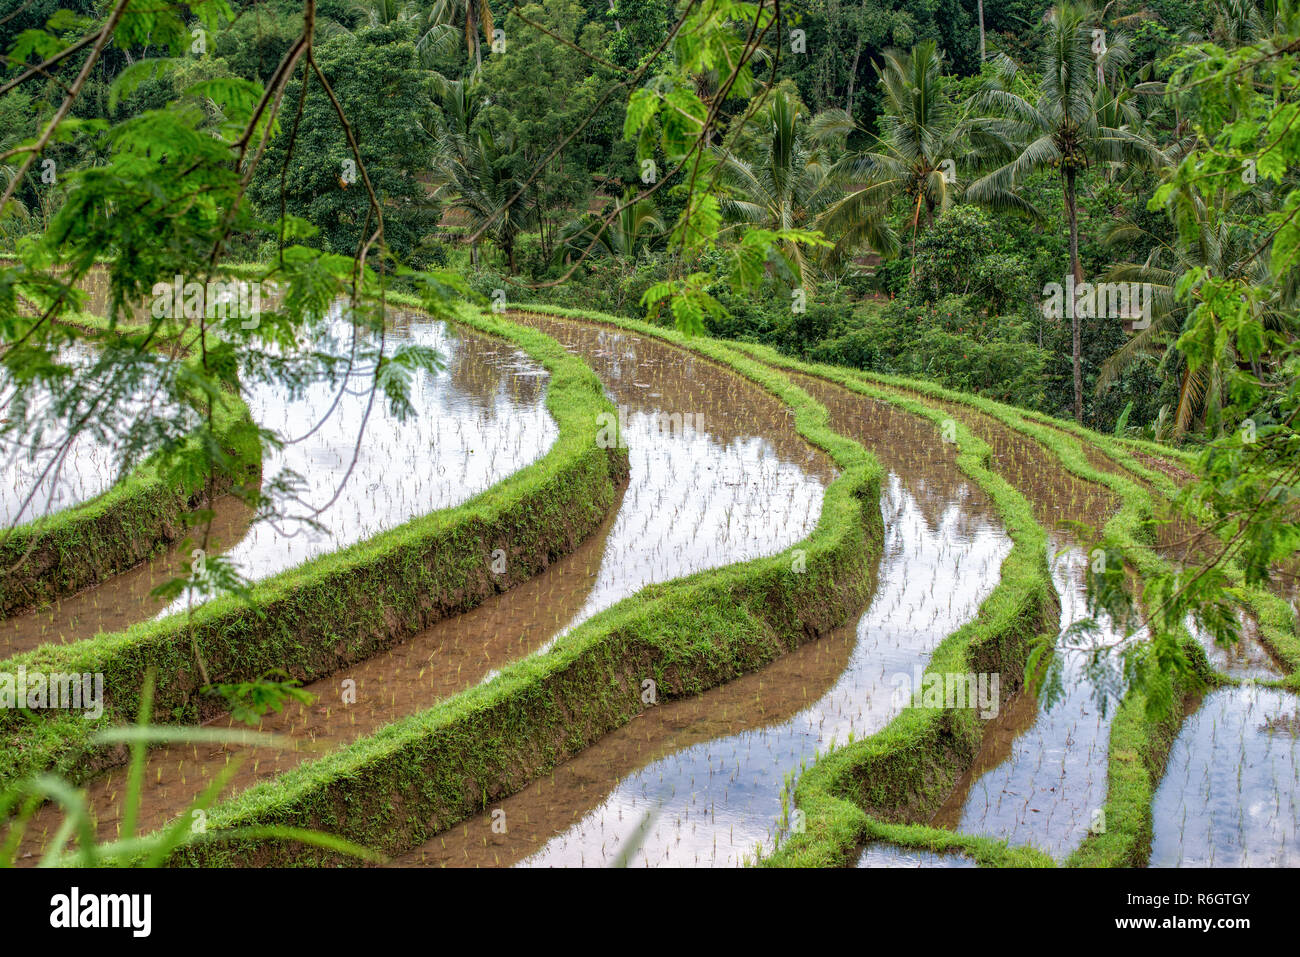 The famous Balinese rice terraces at Jatiluwih - Stock Image